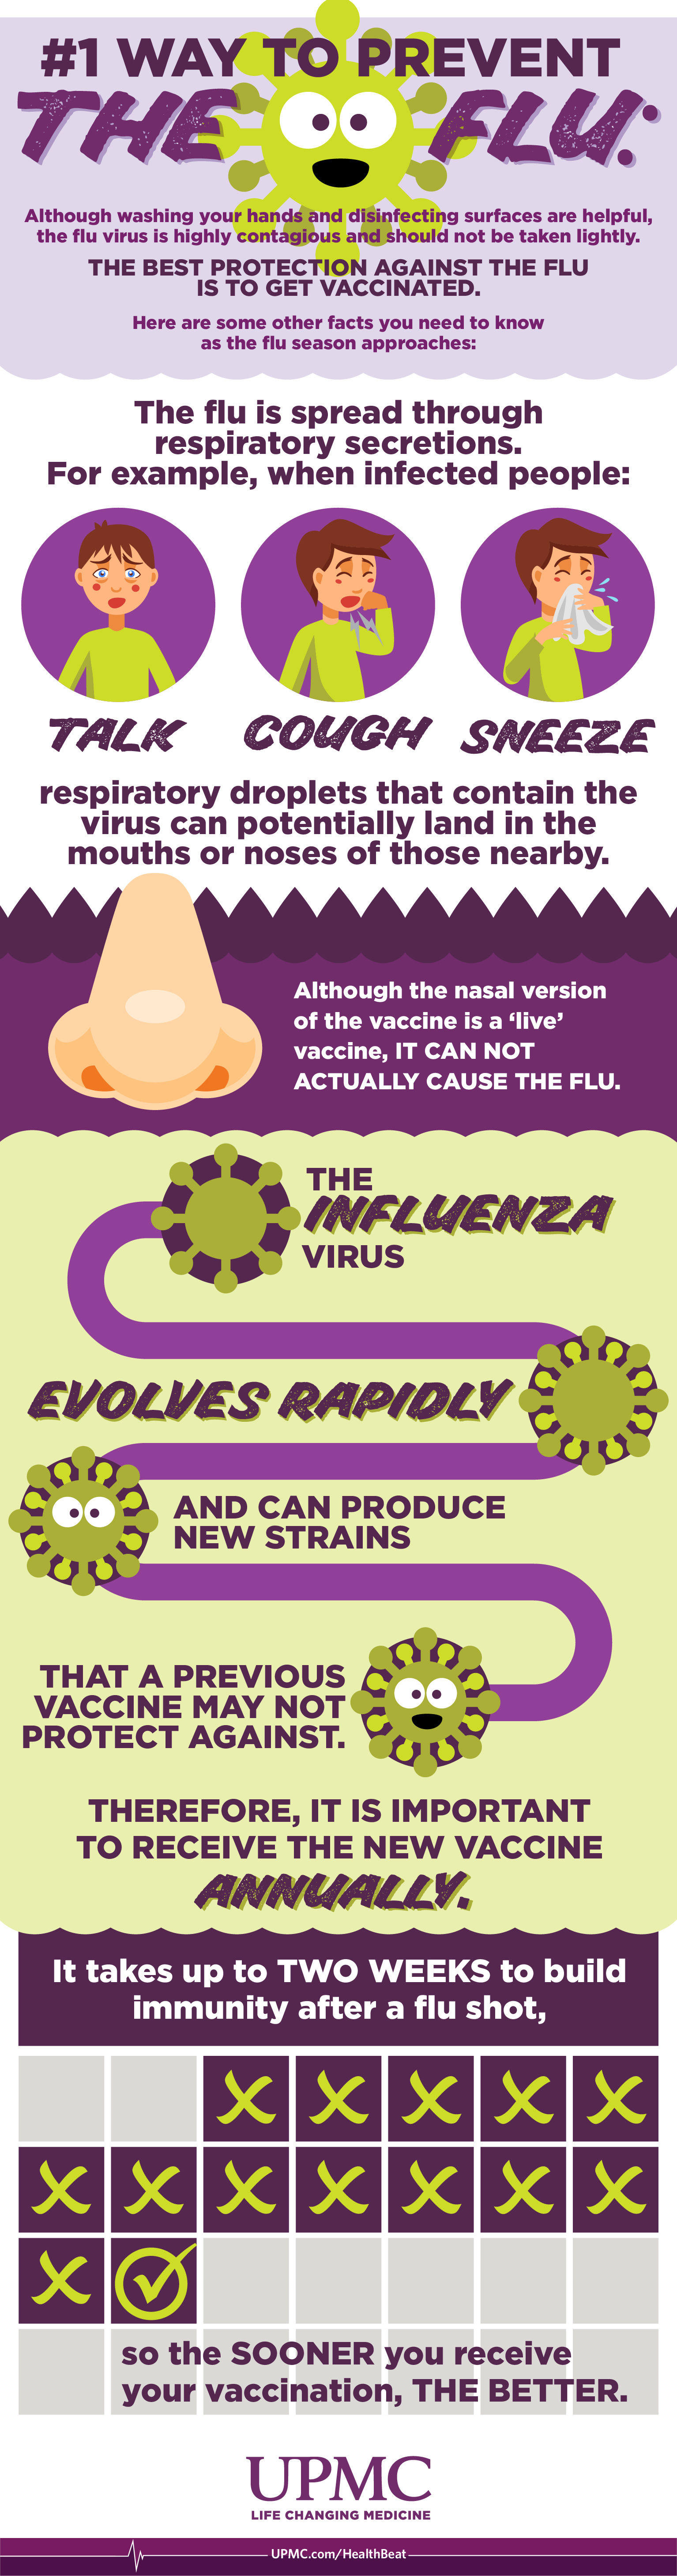 Learn more about how to treat the flu